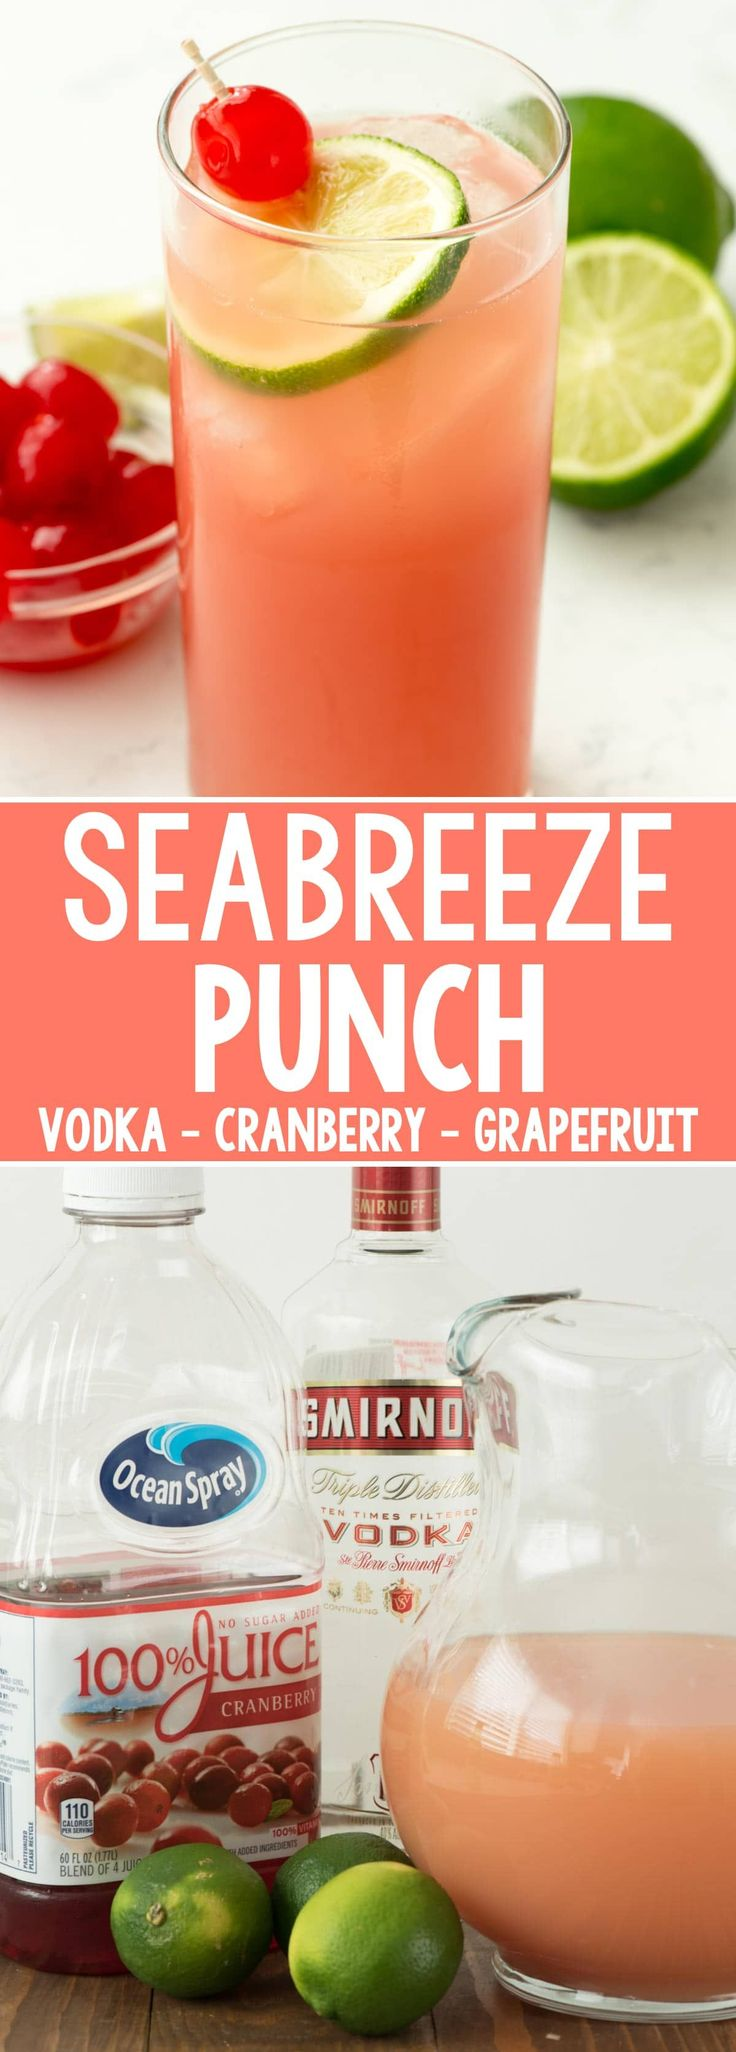 Seabreeze Cocktail Punch - this easy cocktail recipe has just three ingredients: vodka, grapefruit, and cranberry juice. It's the perfect summer punch recipe and leaves you feeling refreshed.